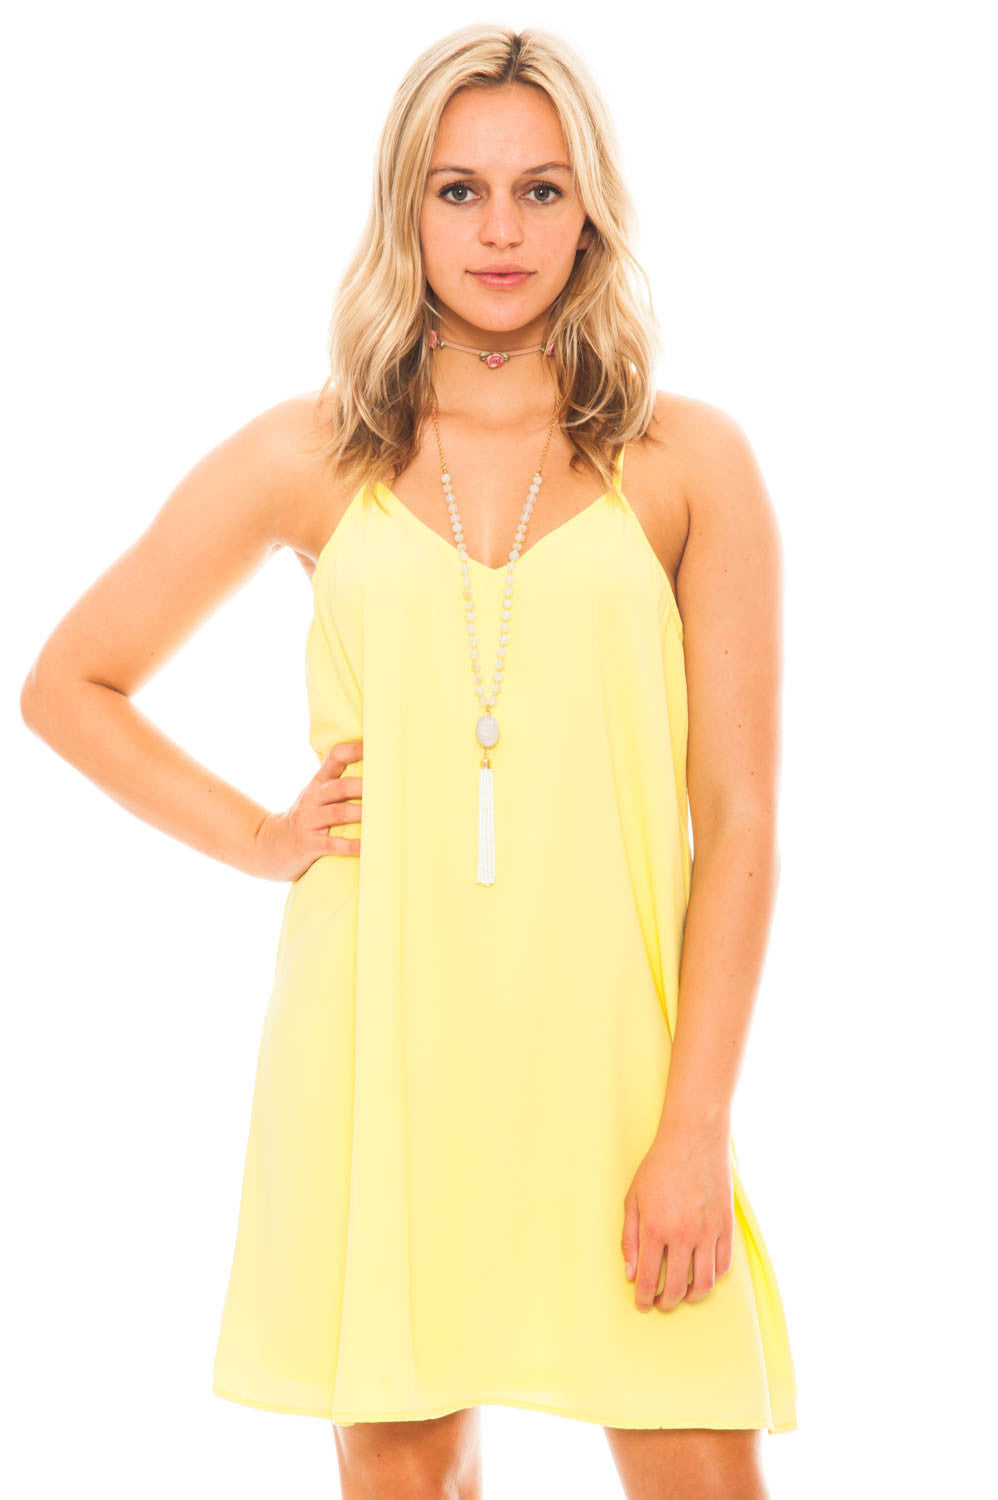 Dress - Simply Summer V-neck Chiffon Dress